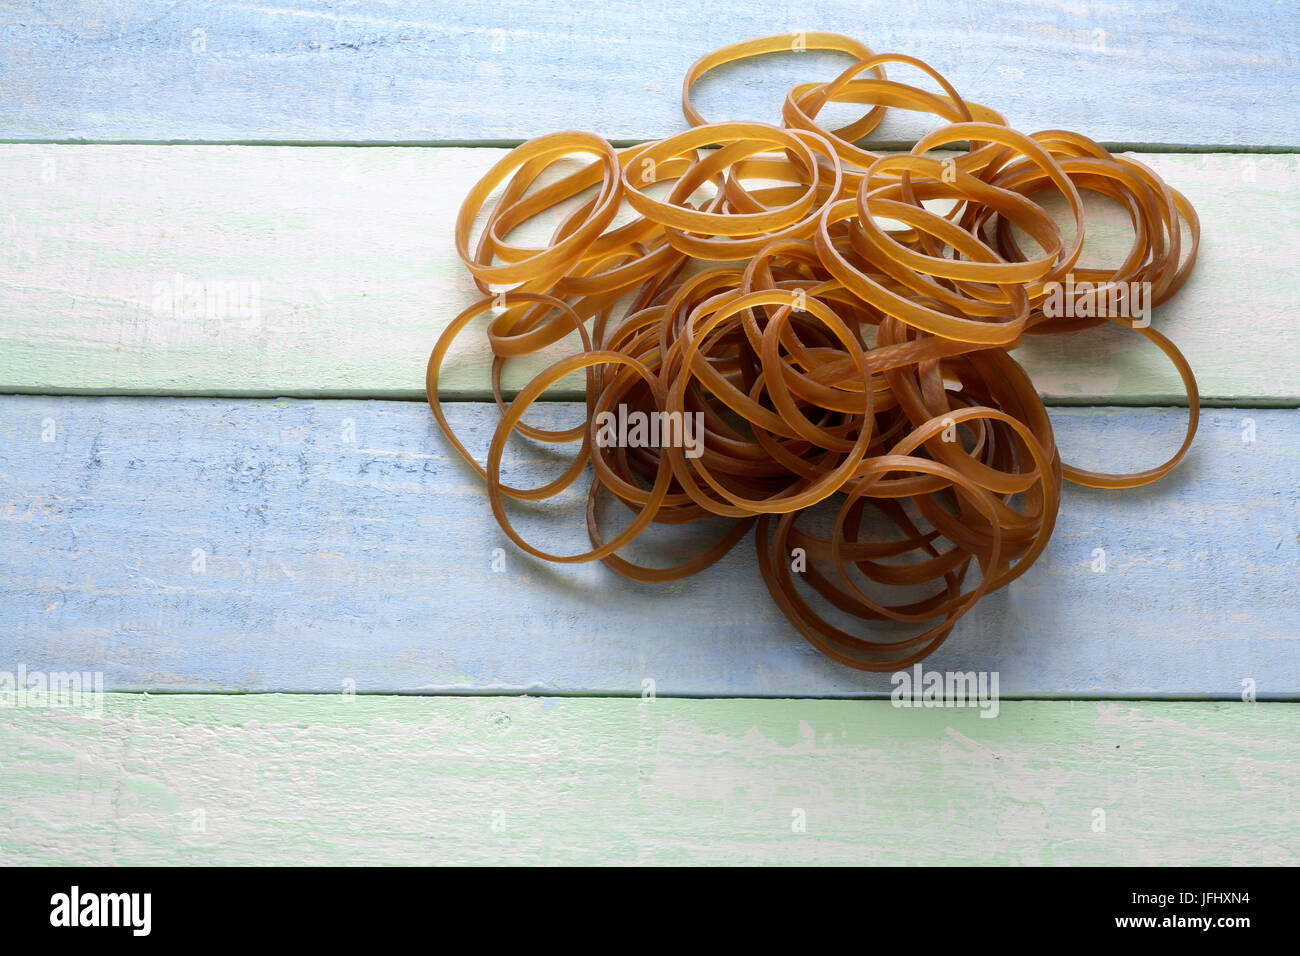 Rubber Bands on Wooden Background - Stock Image